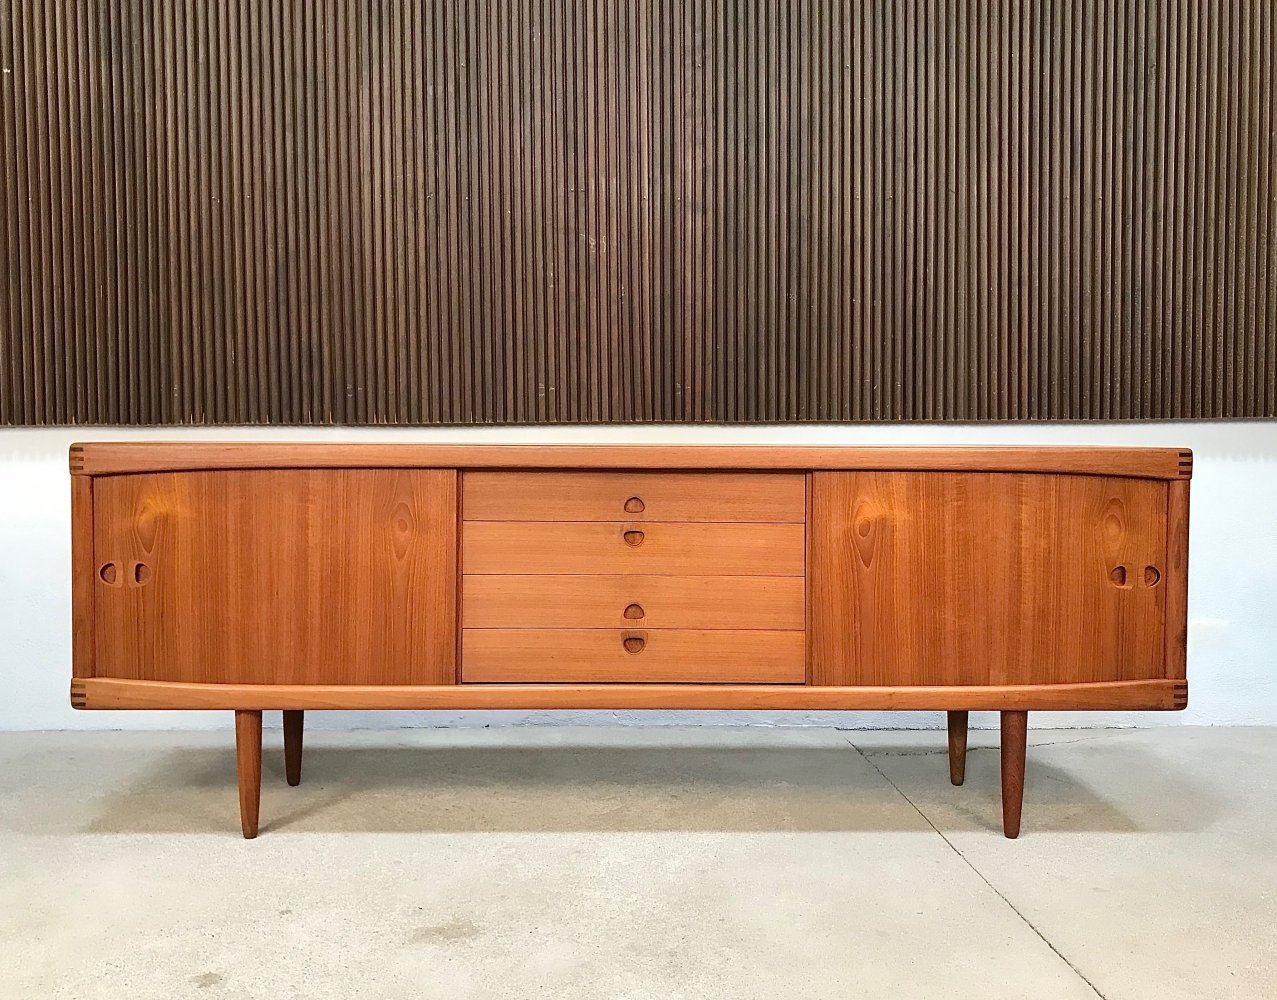 Large Danish Teakwood Sideboard by H.W. Klein for Bramin, 1960s